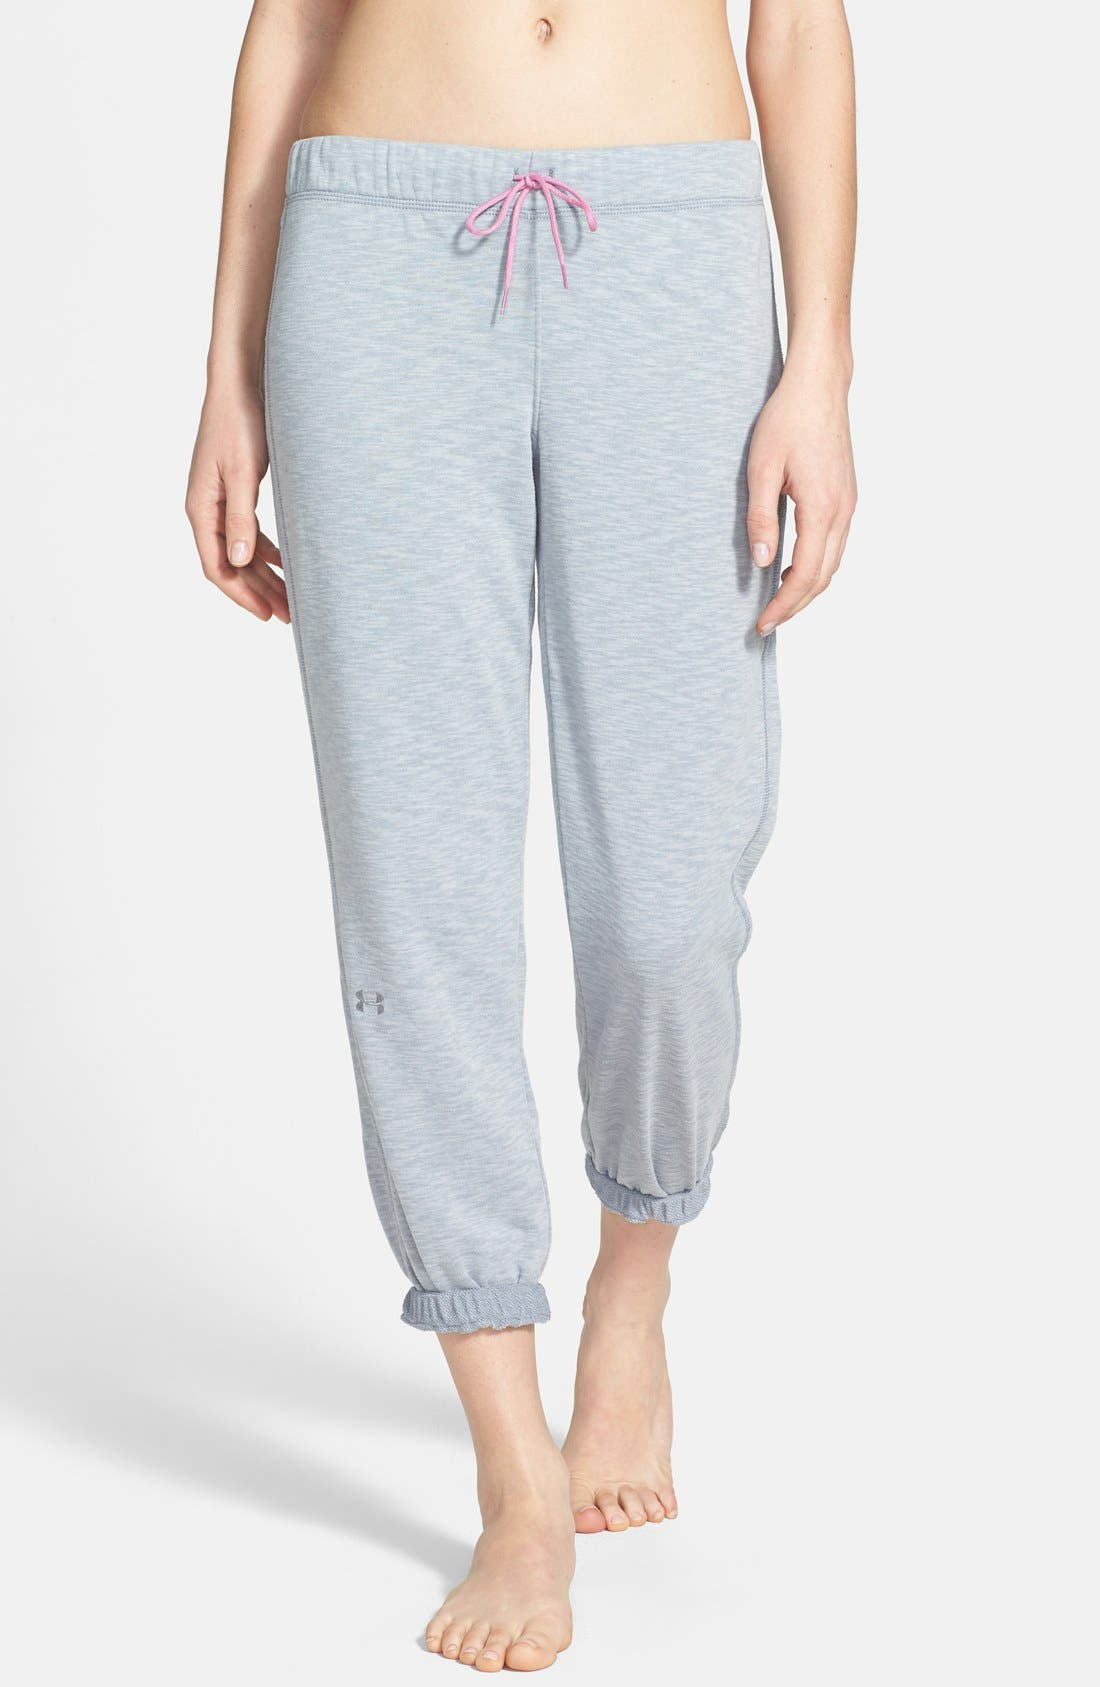 Main Image - Under Armour 'Rollick' French Terry Fleece Capri Sweatpants